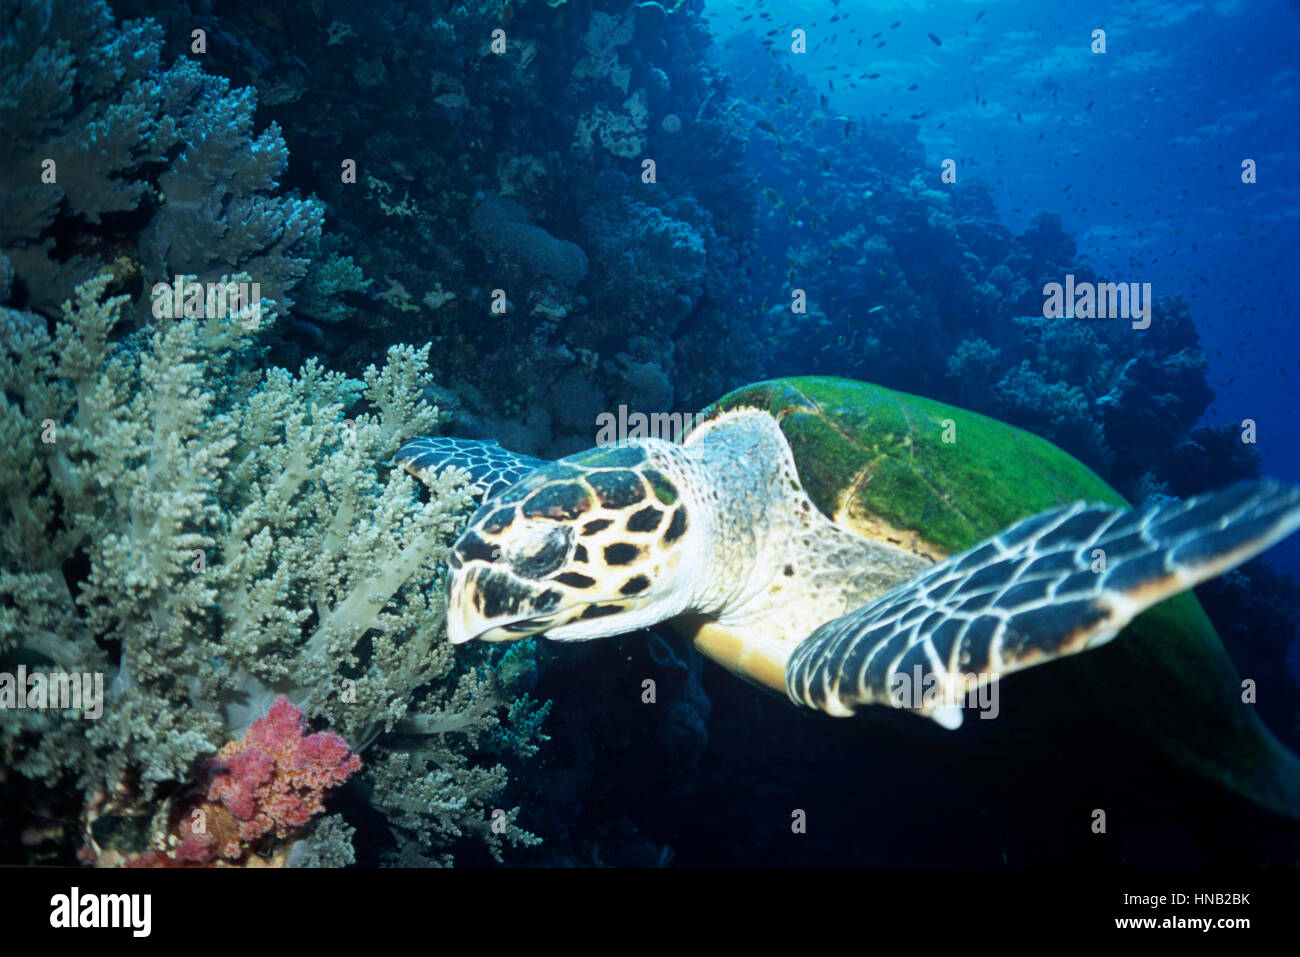 A hawksbill turtle (Eretmochelys imbricata) and soft corals. The IUCN Red List indicates that this species is critically - Stock Image